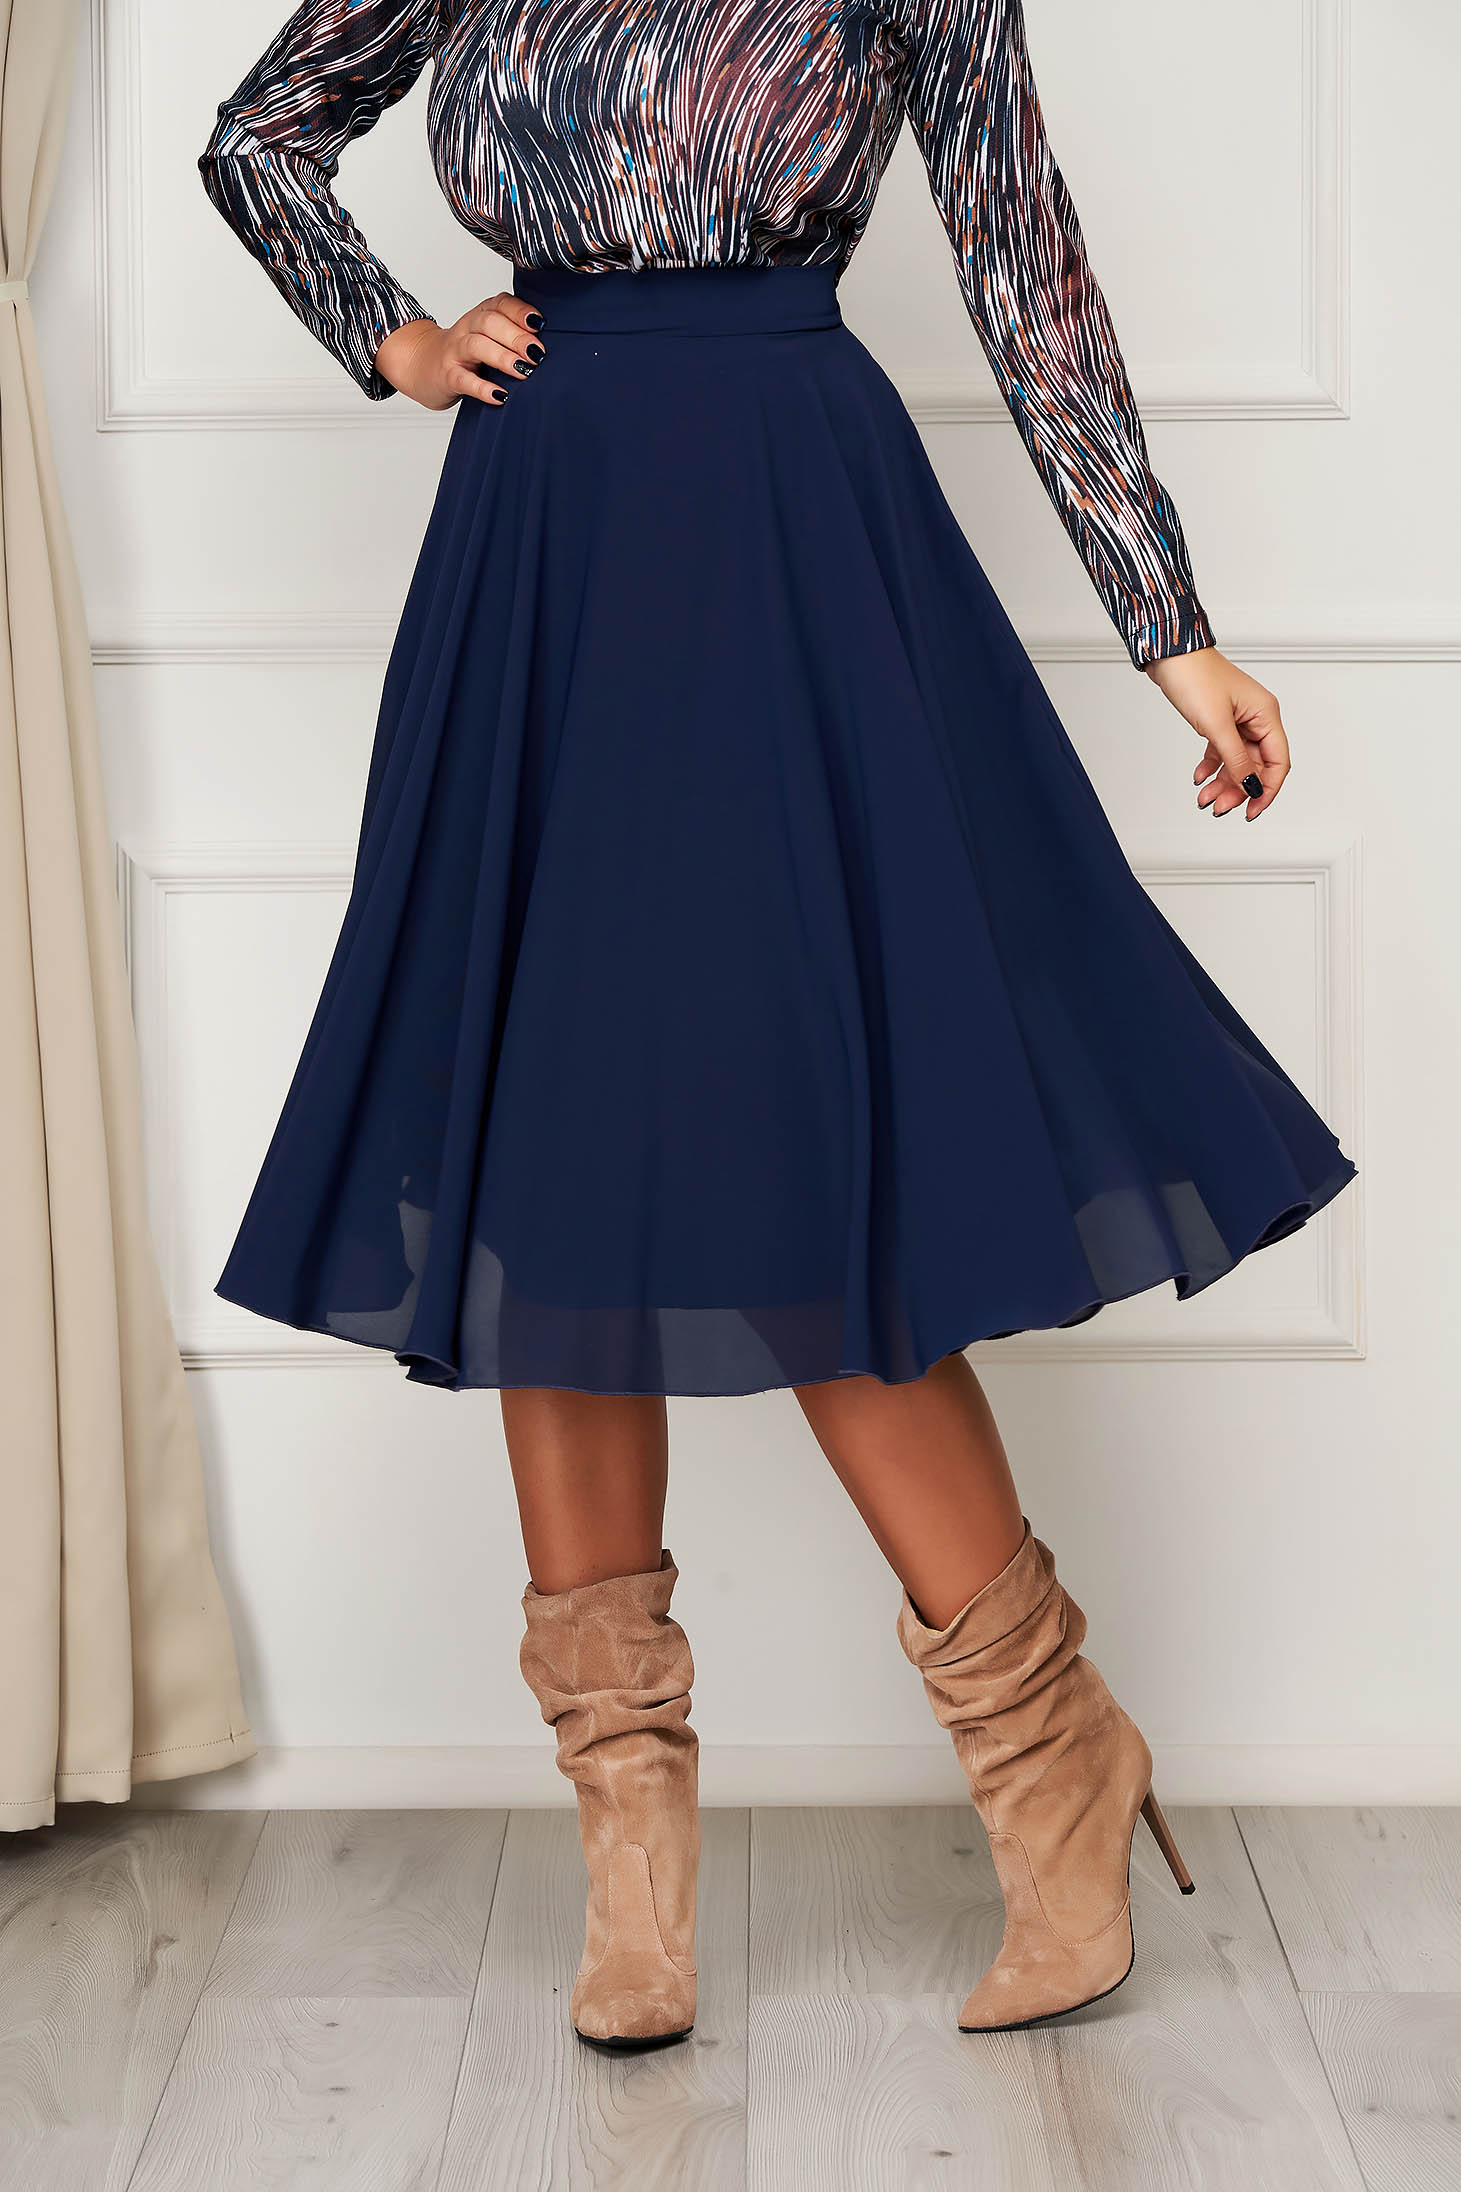 StarShinerS darkblue skirt elegant midi cloche from veil fabric high waisted